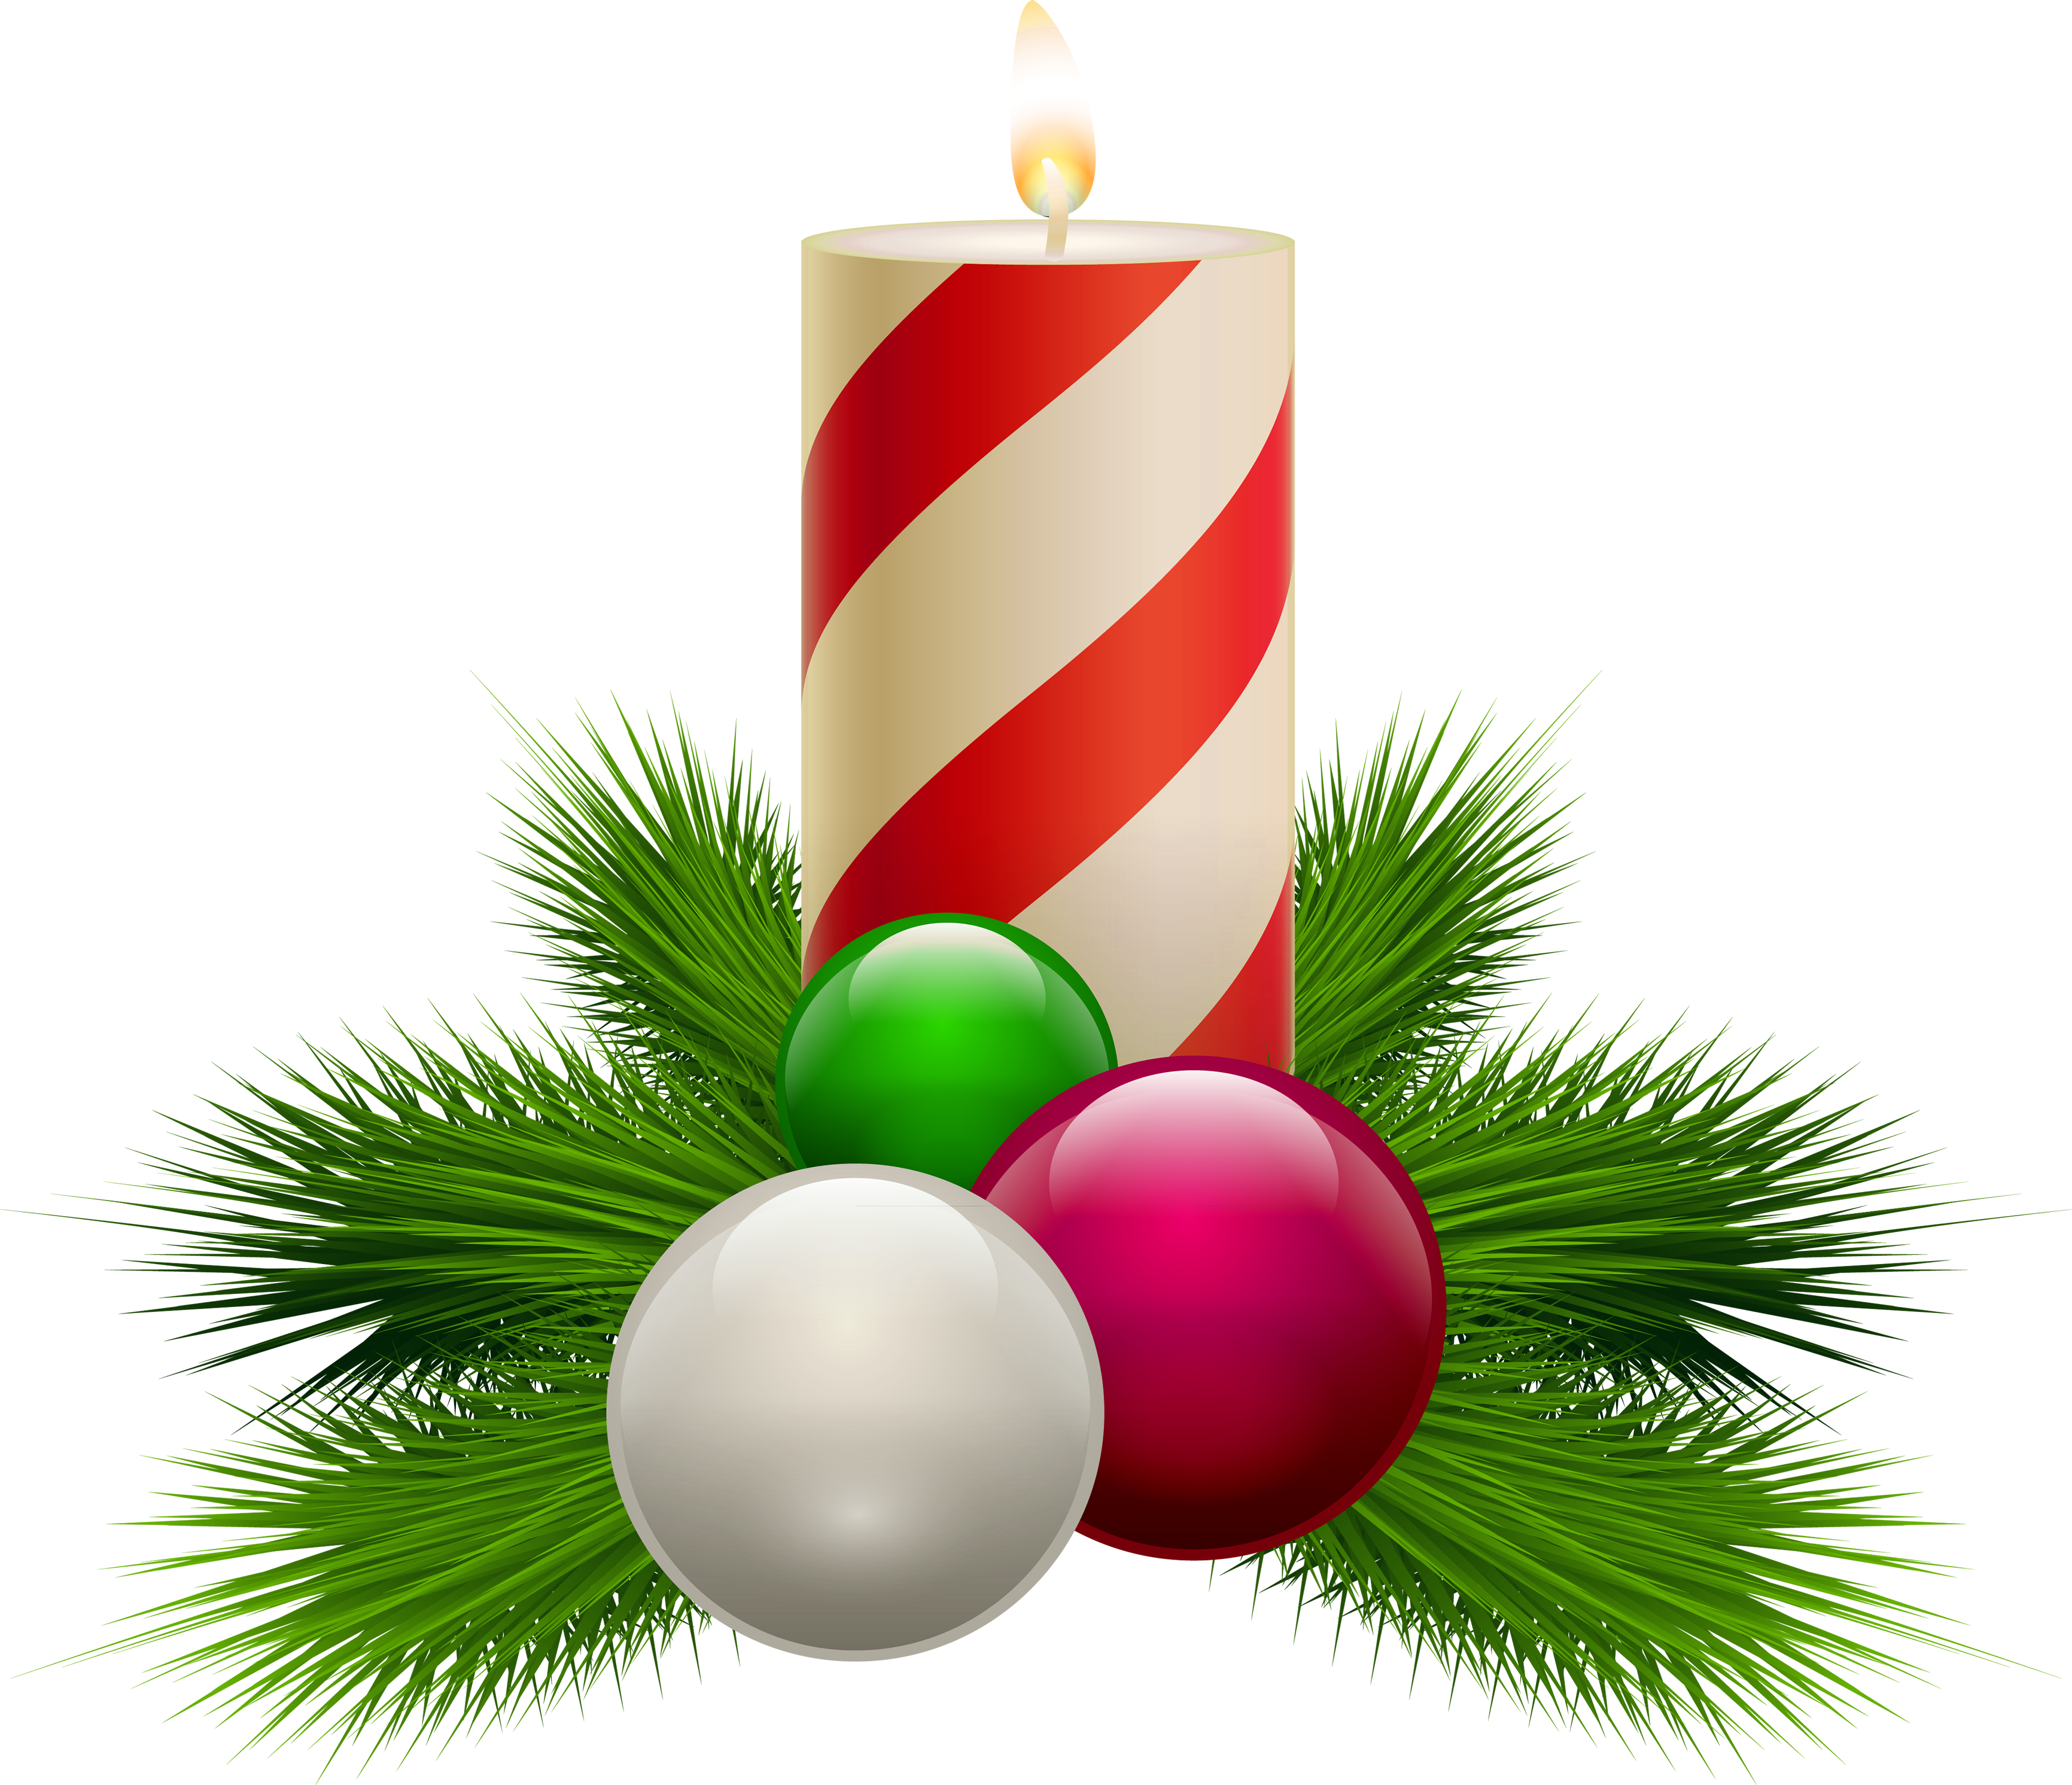 Christmas Candle S Christmas Candle Centerpiece Holiday Scrapbook Christmas Candles